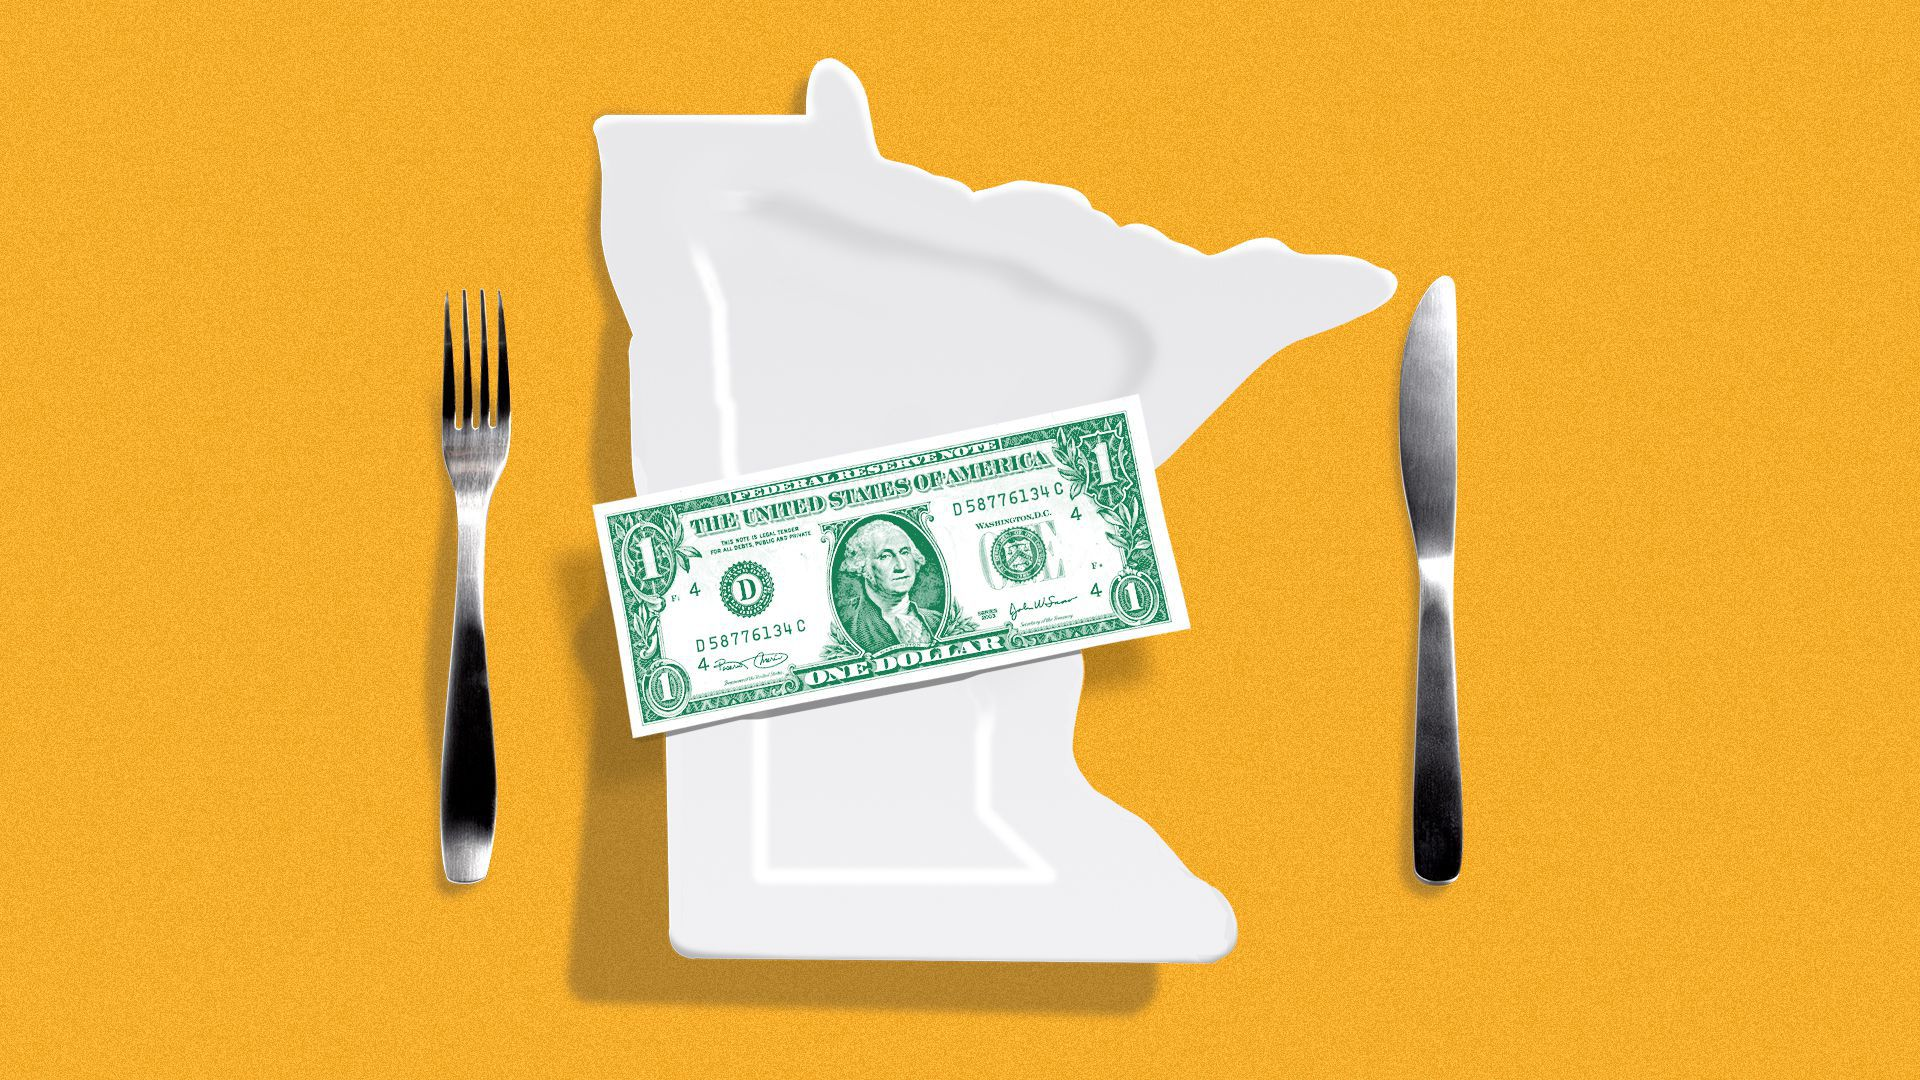 Illustration of a dollar sitting on a plate shaped like the state of Minnesota.